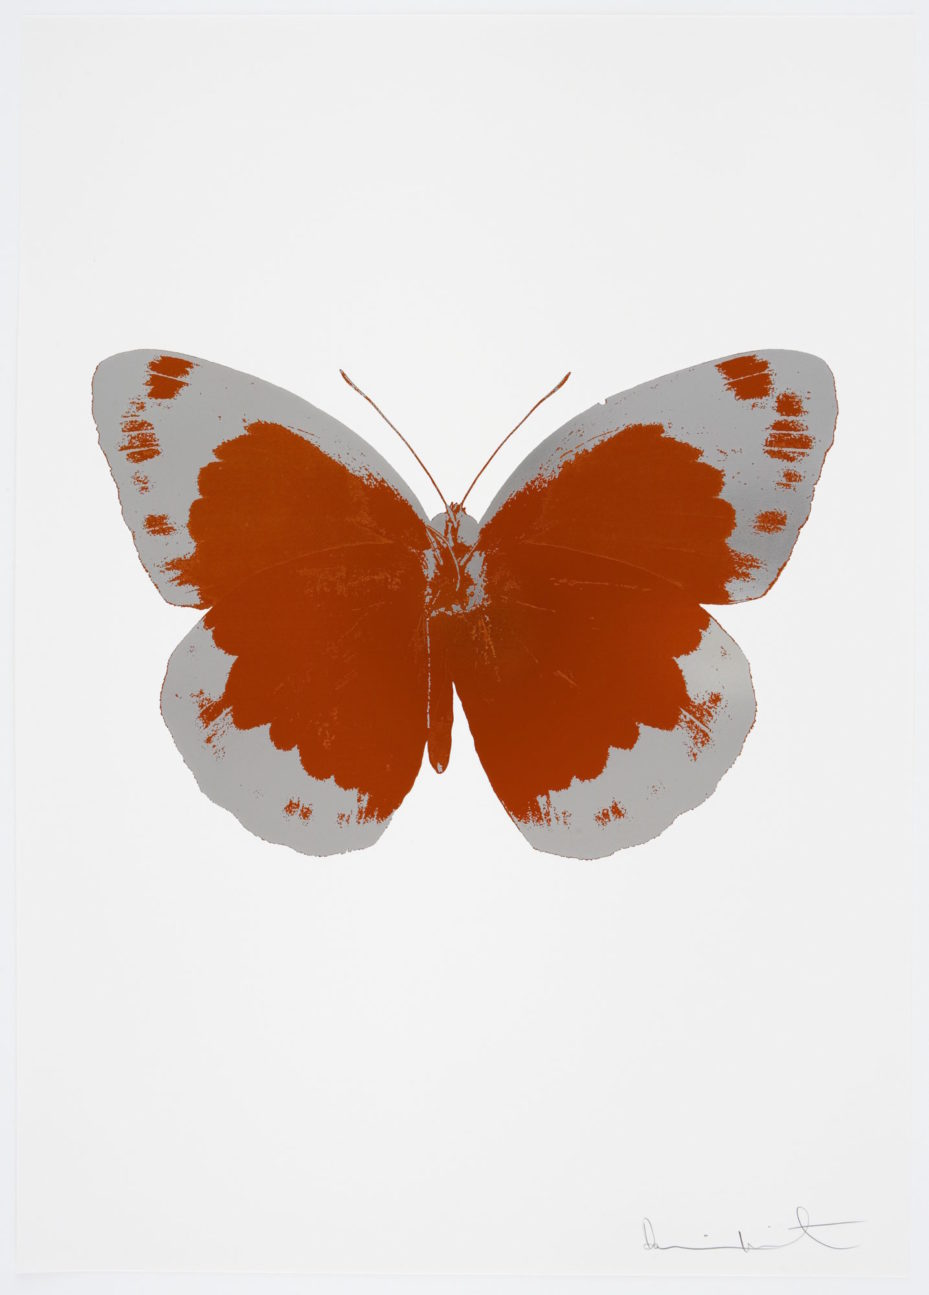 the souls ii Prairie Copper and Silver Gloss by damien hirst